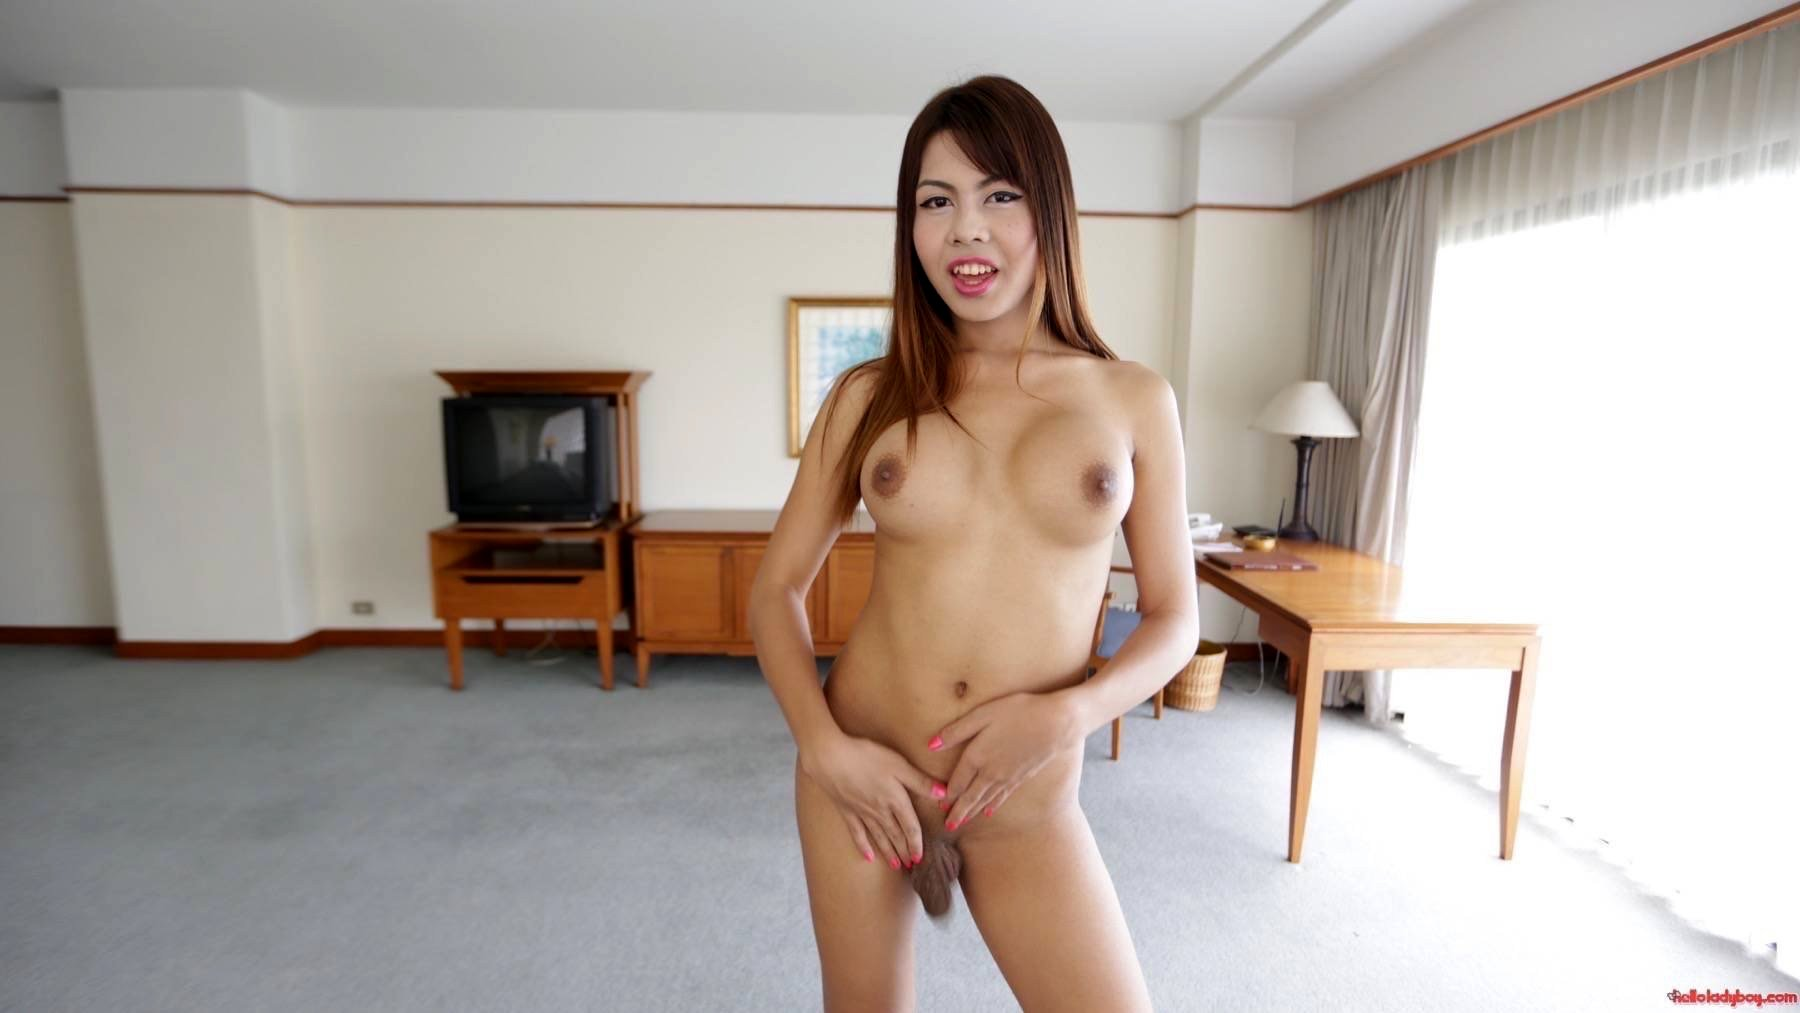 20 Year Old Busty Asian T-Girl Strips To Her Massive Tits And Dick